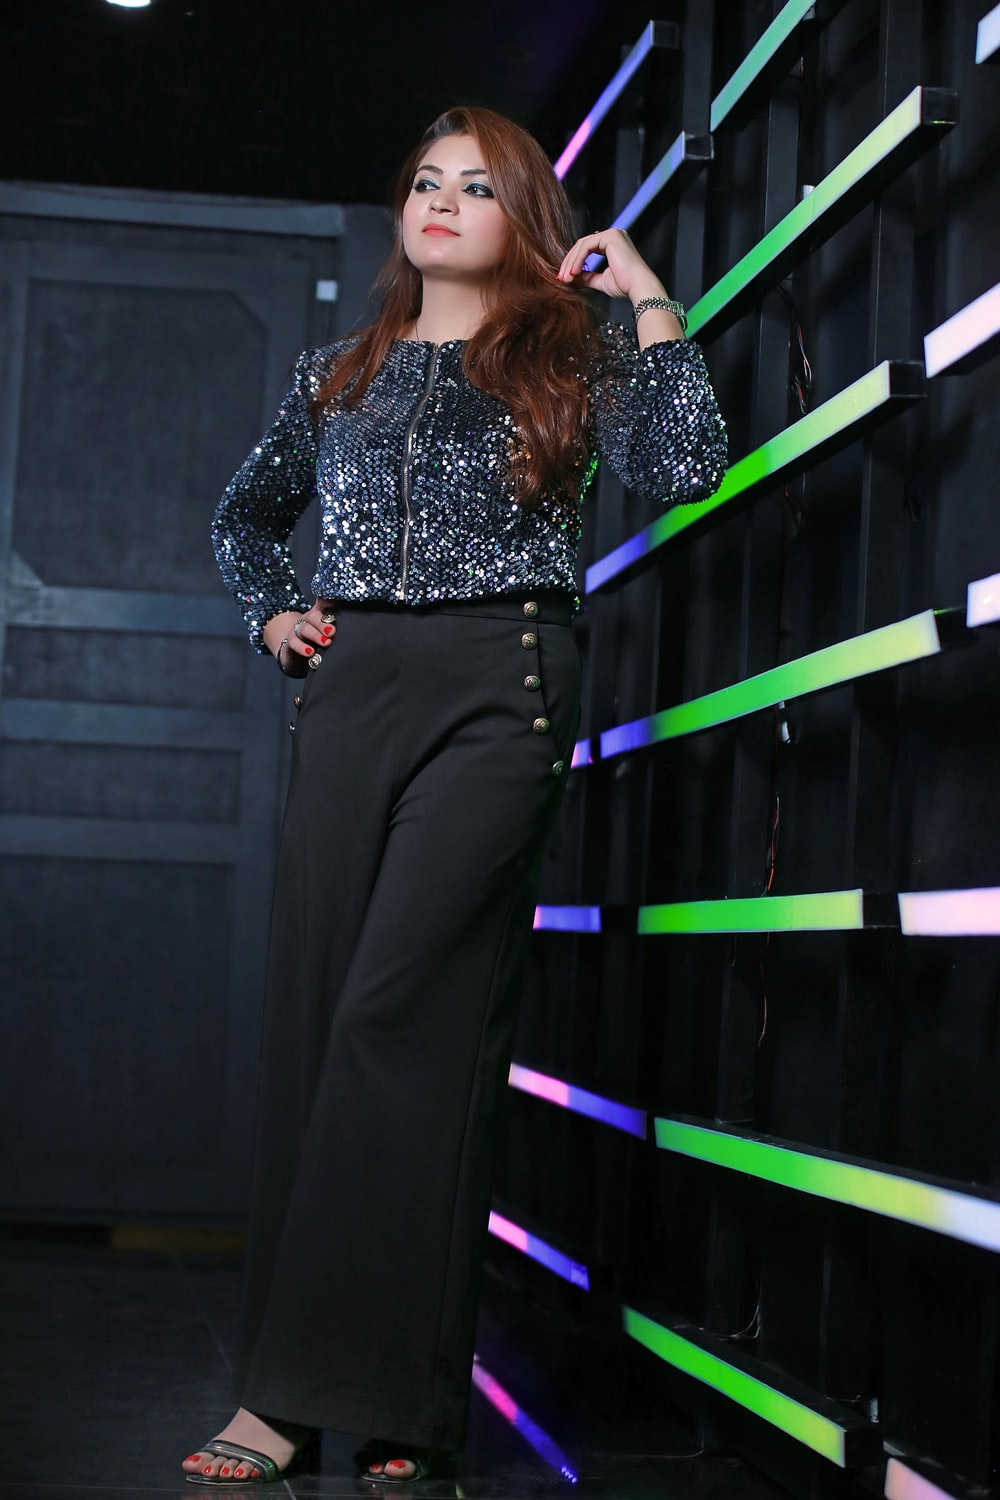 woman in black and white long sleeve shirt and black pants standing on black staircase